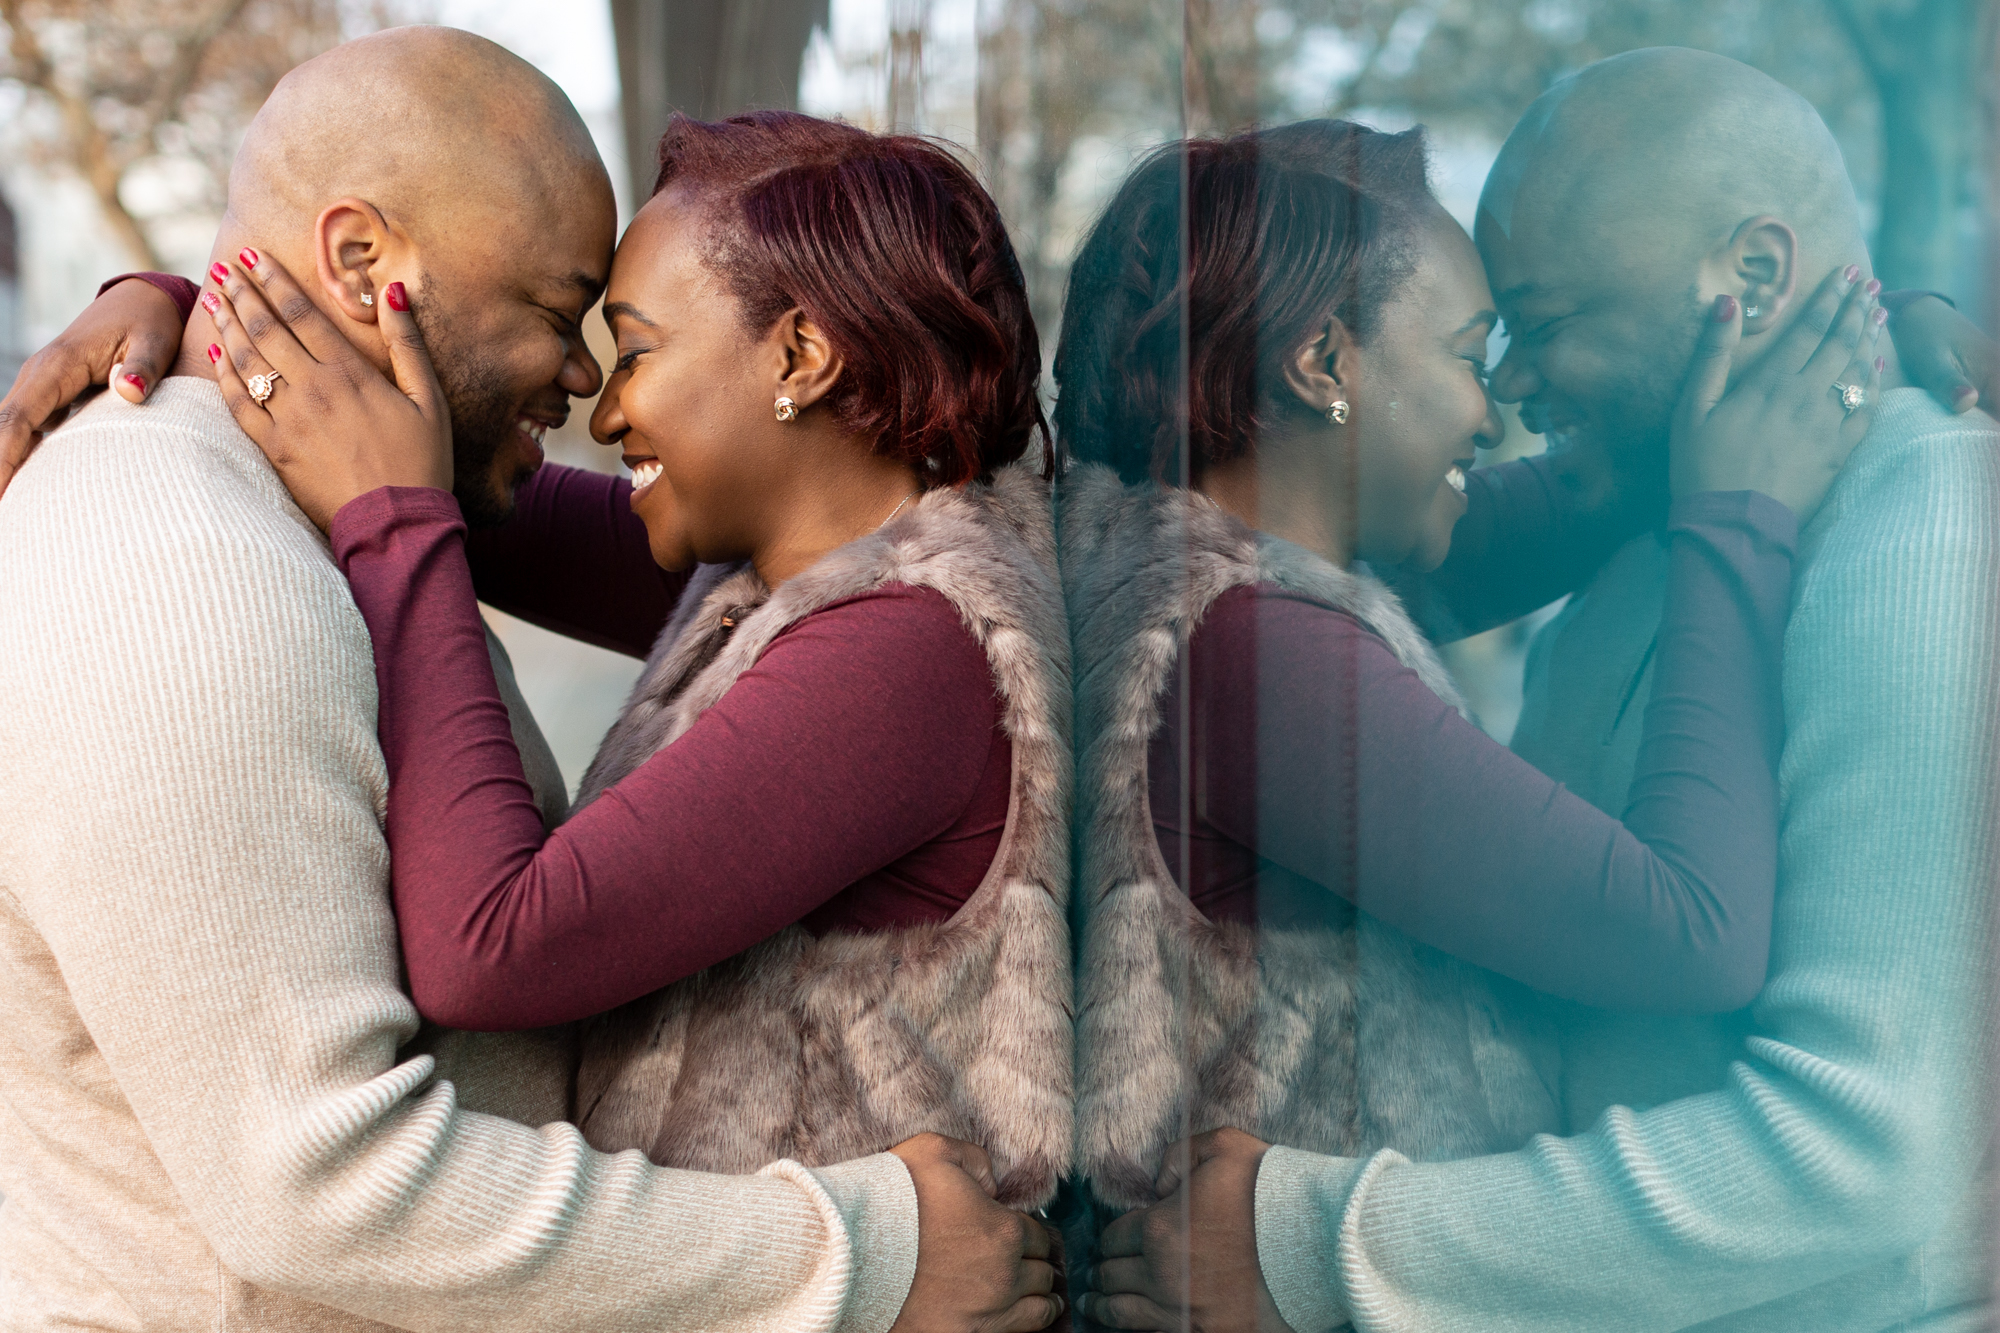 Learn more about Bailey Pianalto Photography's approach to capturing your engagement and unique love story.